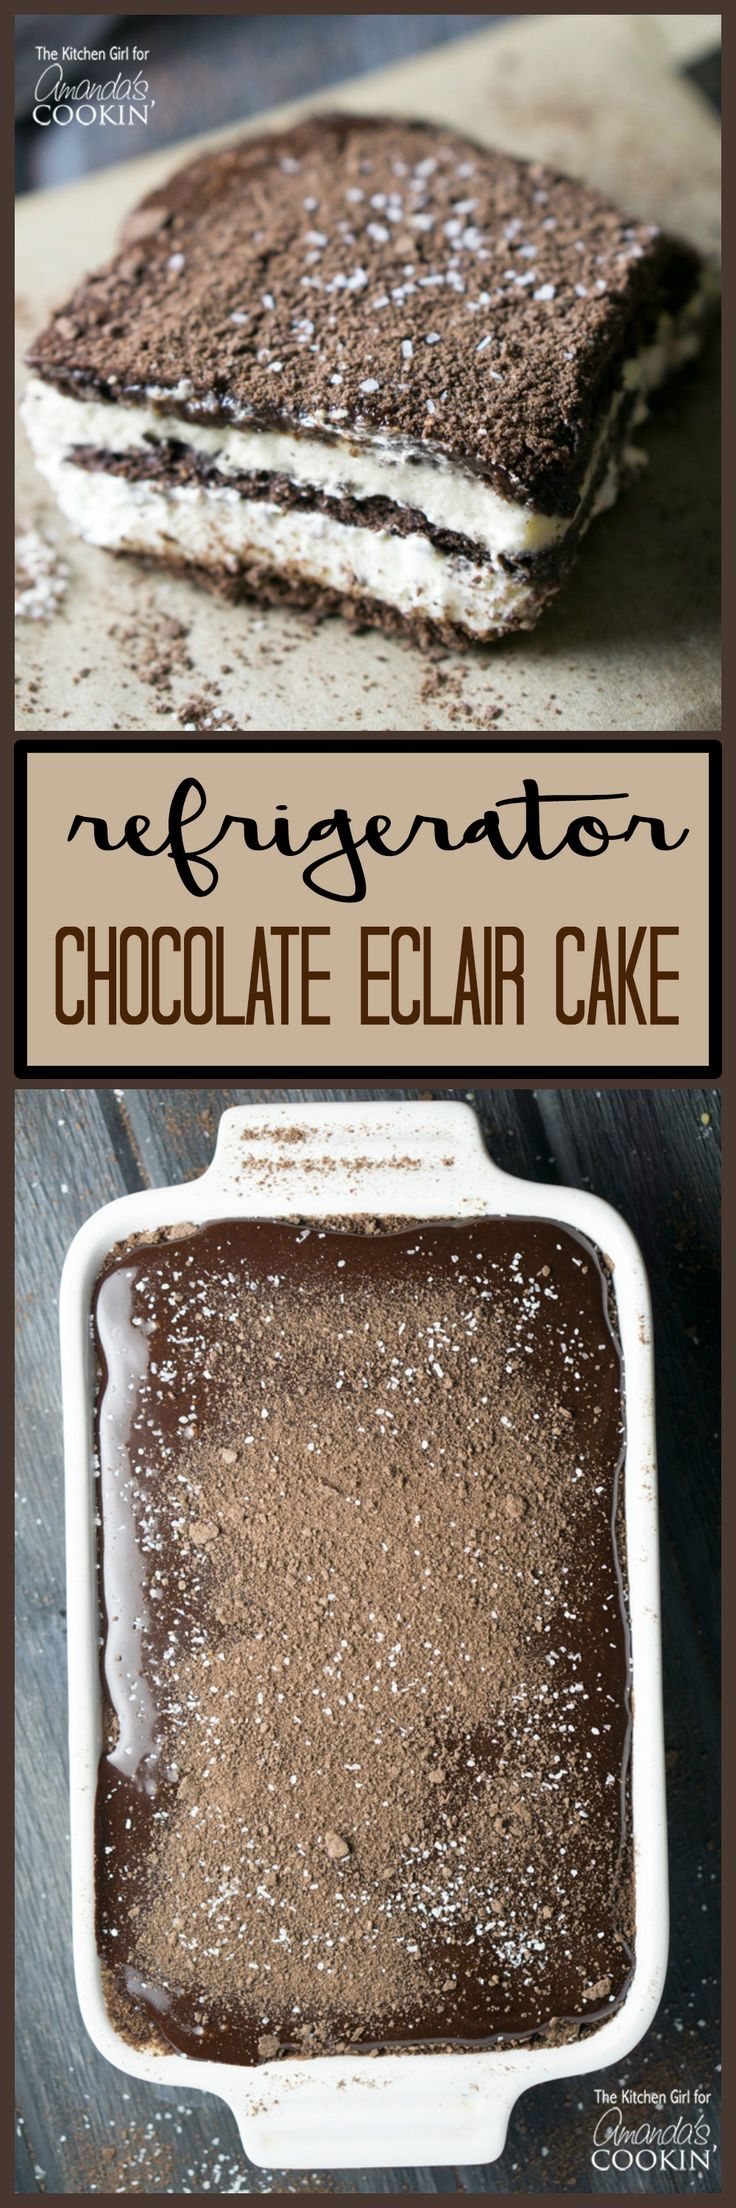 This no bake Chocolate Eclair Cake is a silky, decadent, creamy, chocolatey, cake that magically becomes all of those adjectives with very little effort.